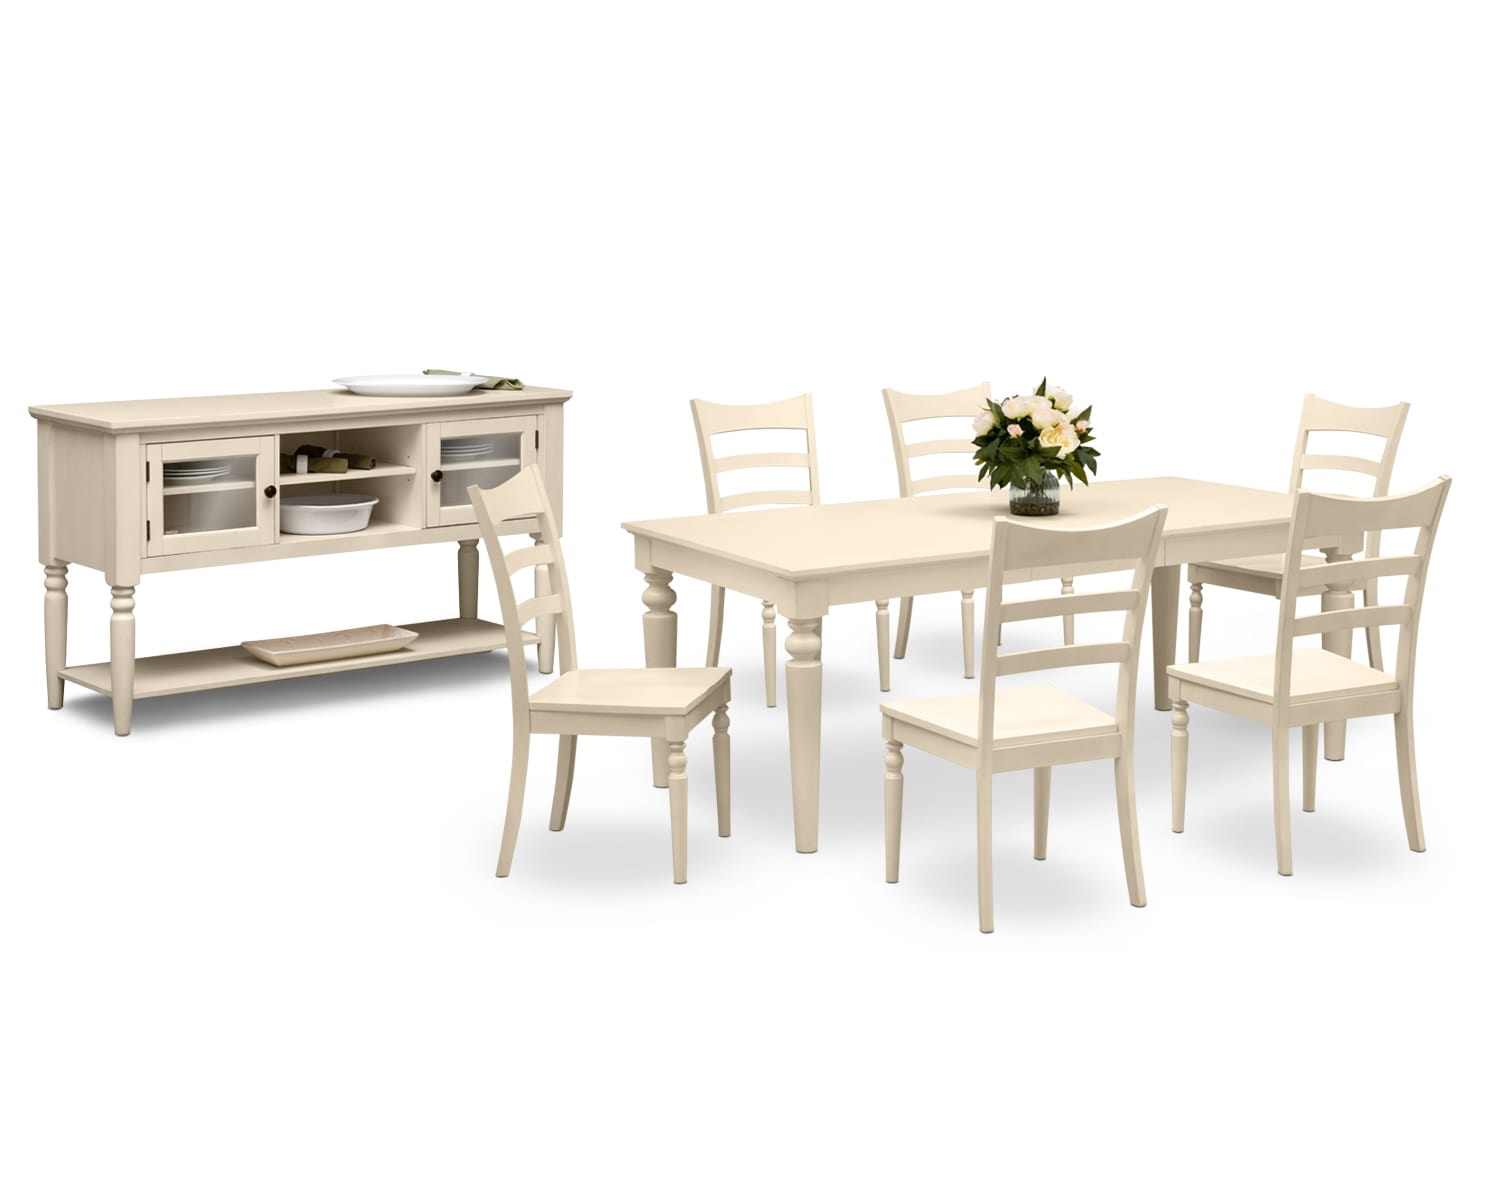 Dining Room Furniture - The Thompson Cream Collection - Table